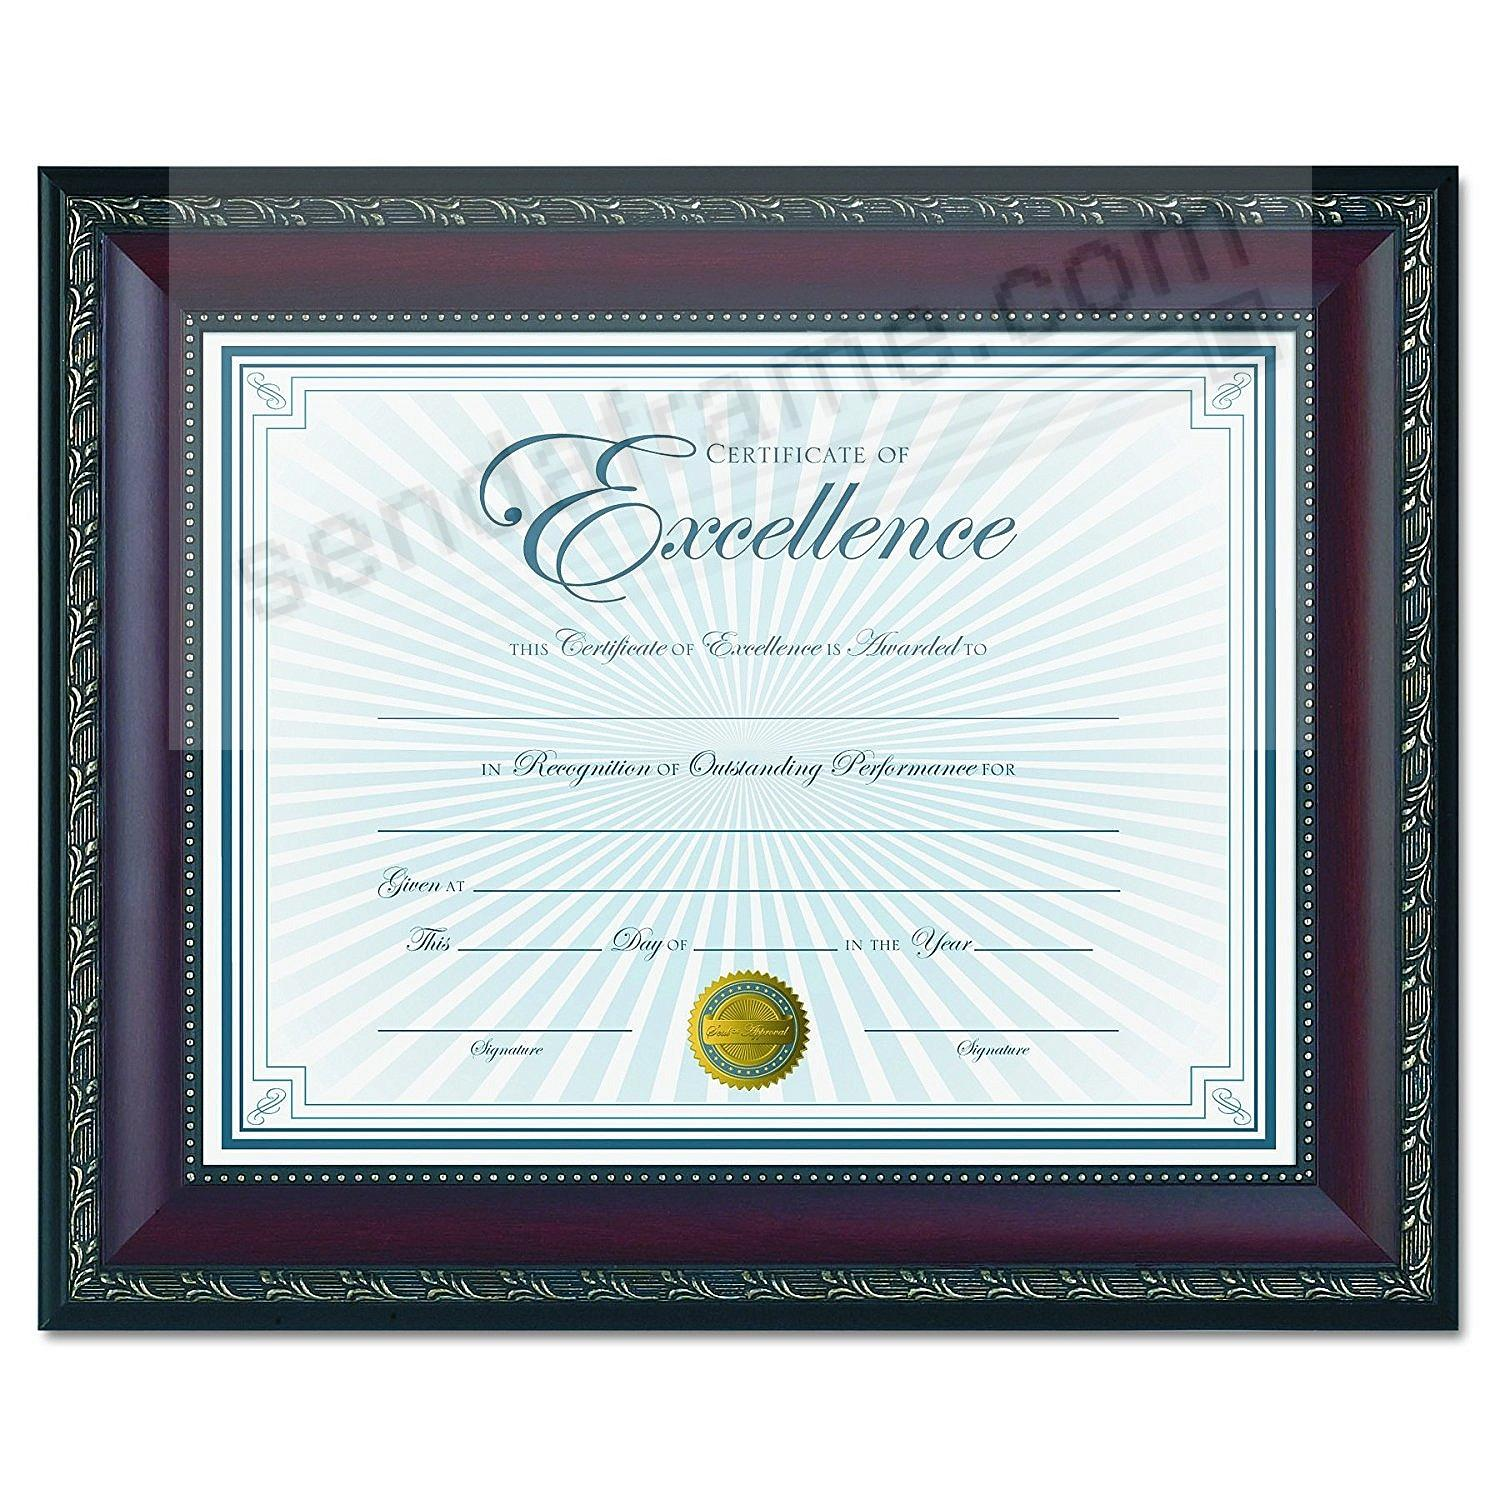 WORLD CLASS Walnut Frame with Certificate by DAX®